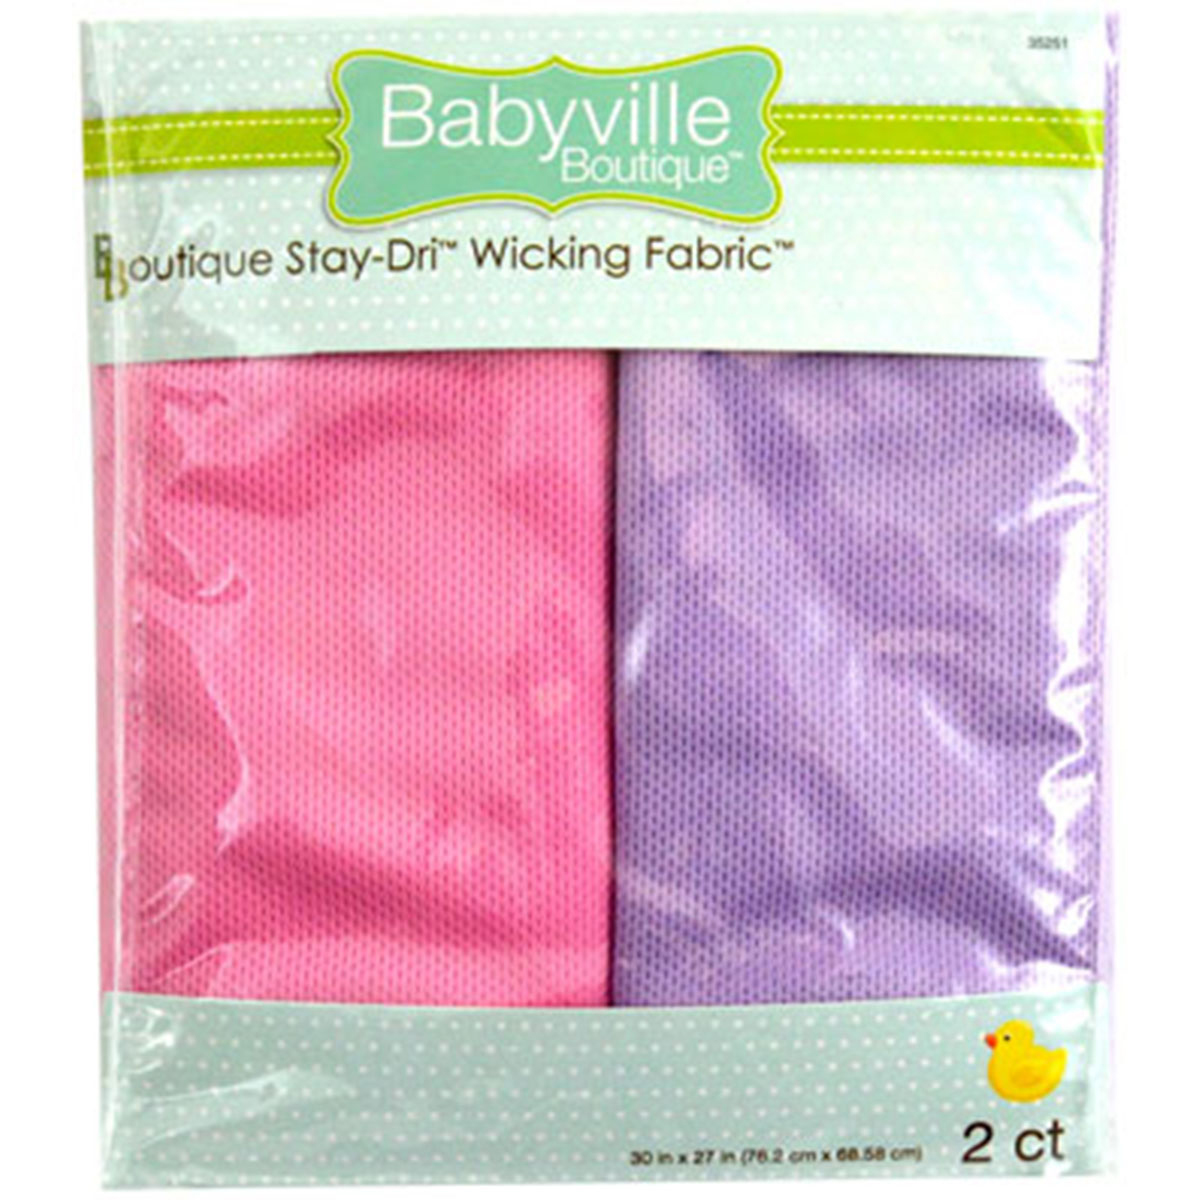 Babyville Boutique 30\u0022 x 27\u0022 Wicking Fabric Pink Lavender